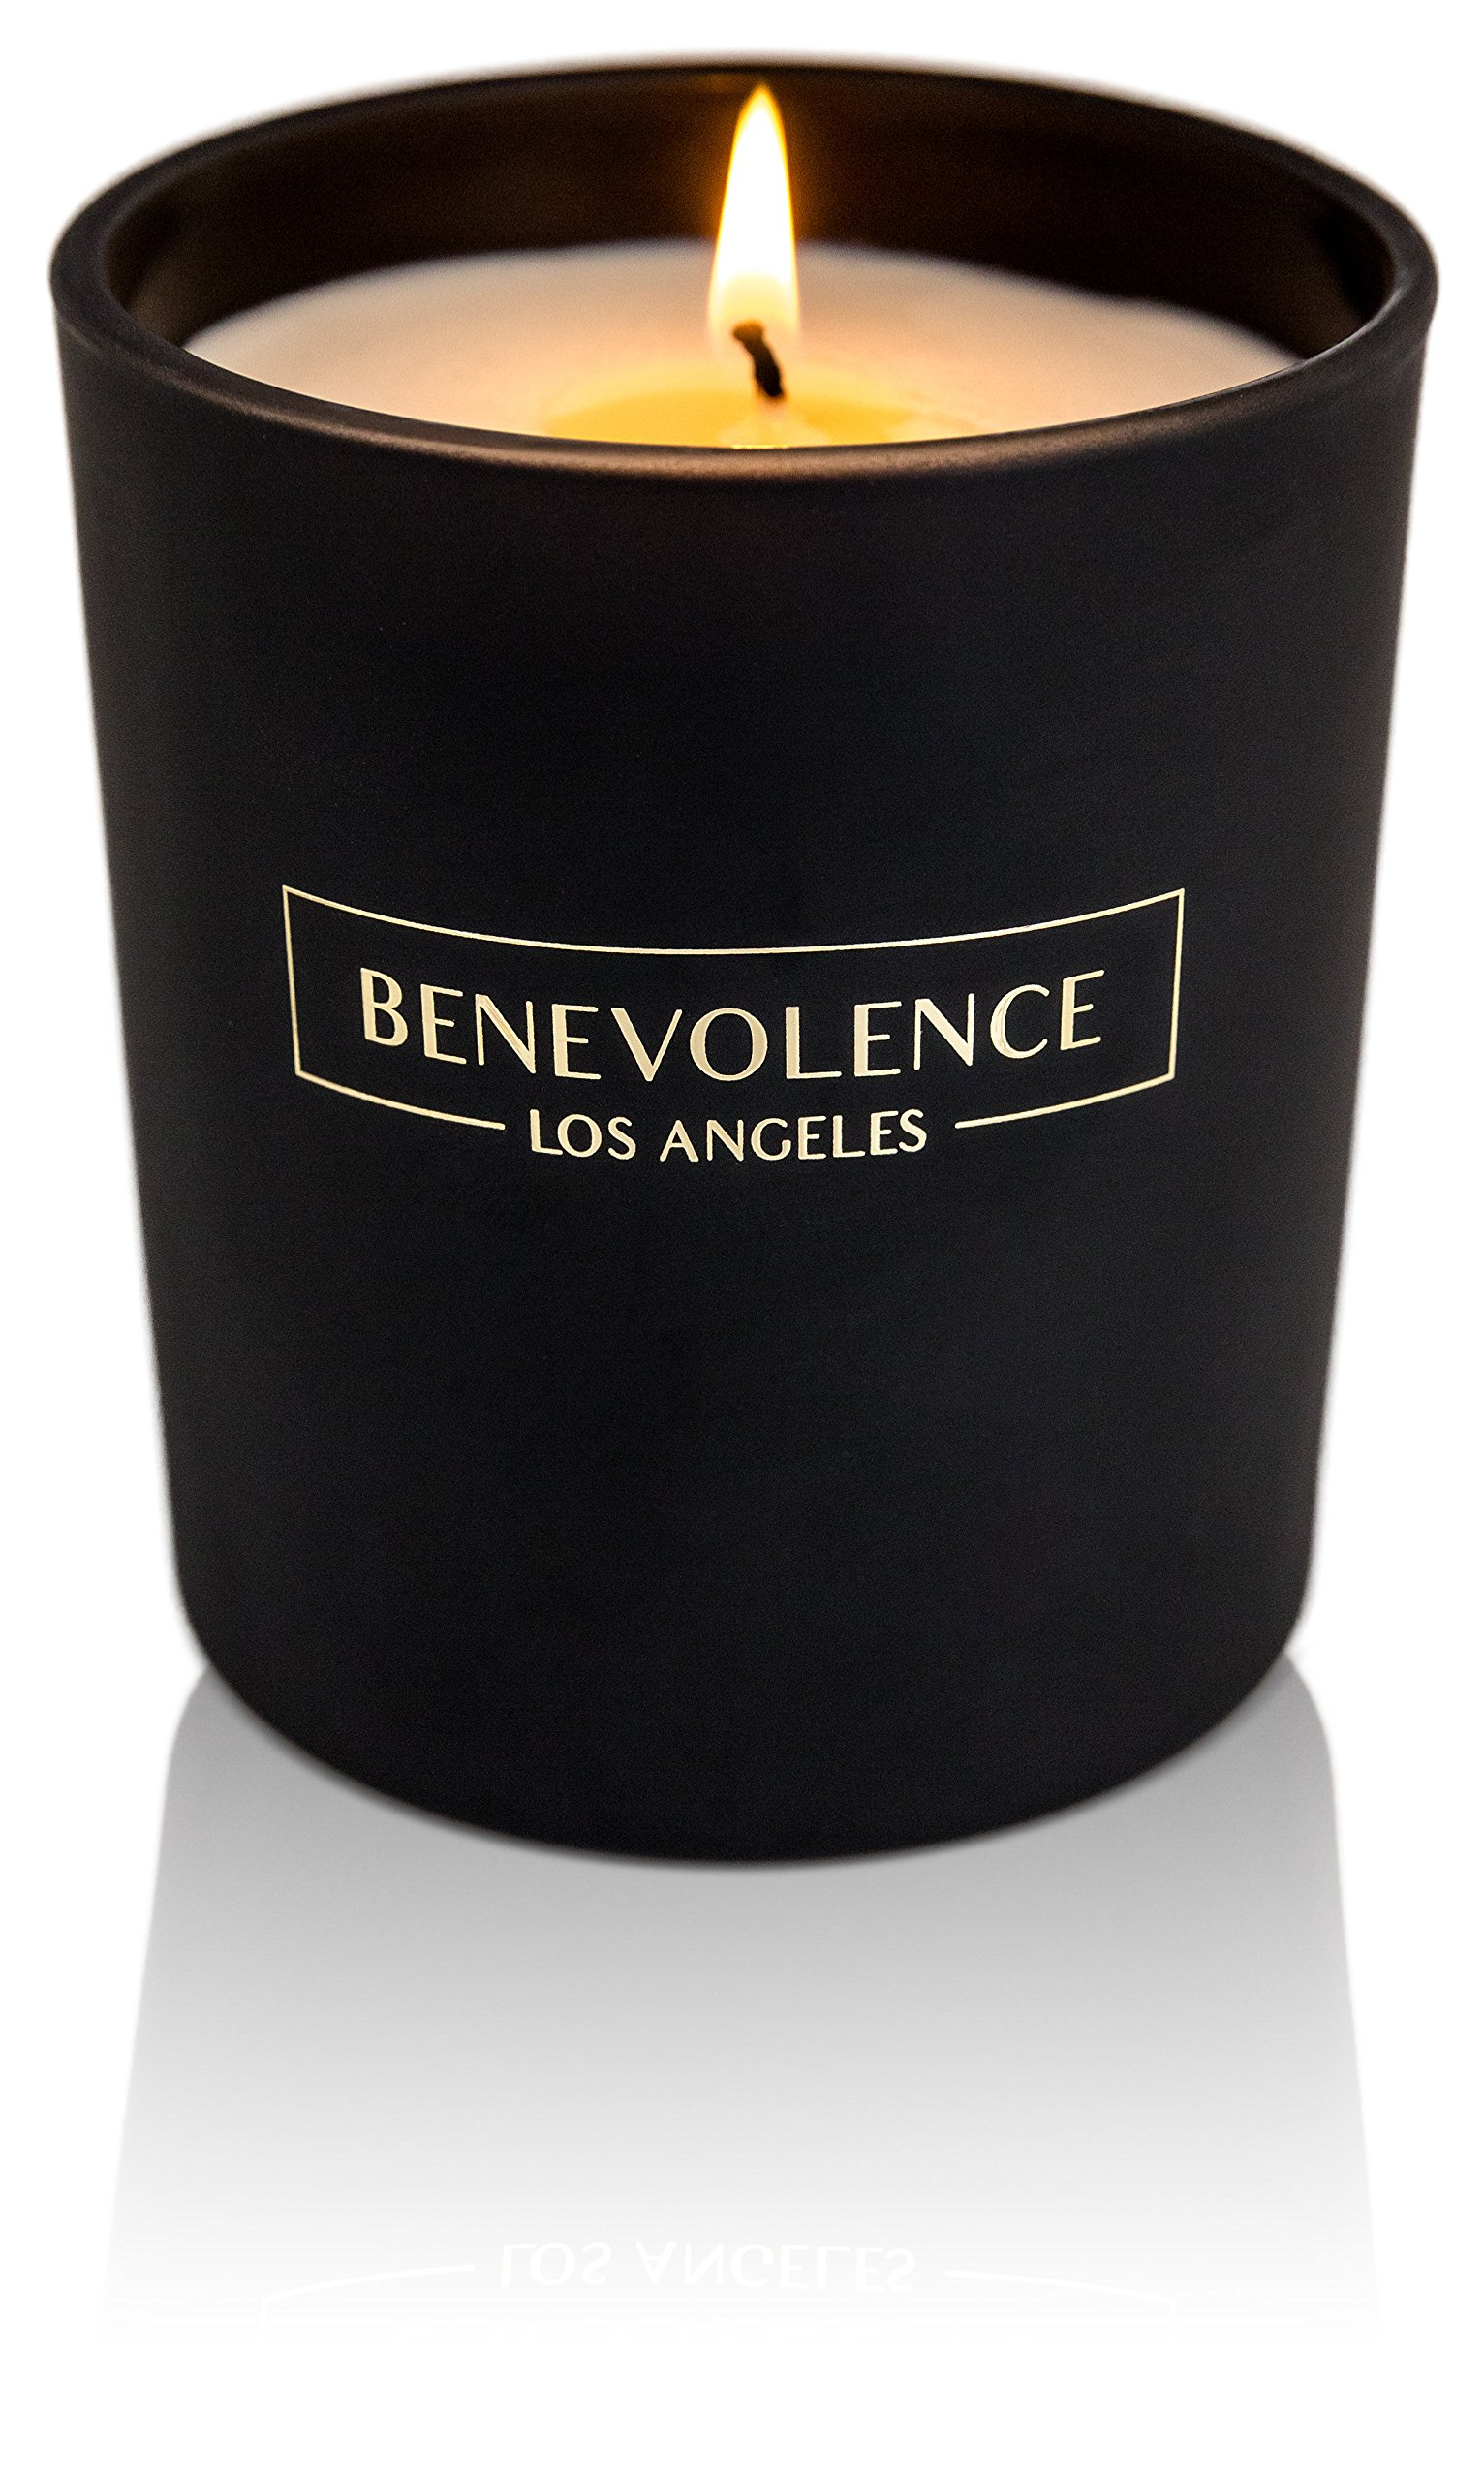 Benevolence LA Scented Candle Aromatherapy Rose & Sandalwood: Strong Clean Fragrance For Home Soy Wax Matte Black Glass for Charity Citrus Decorative Jar by Benevolence LA